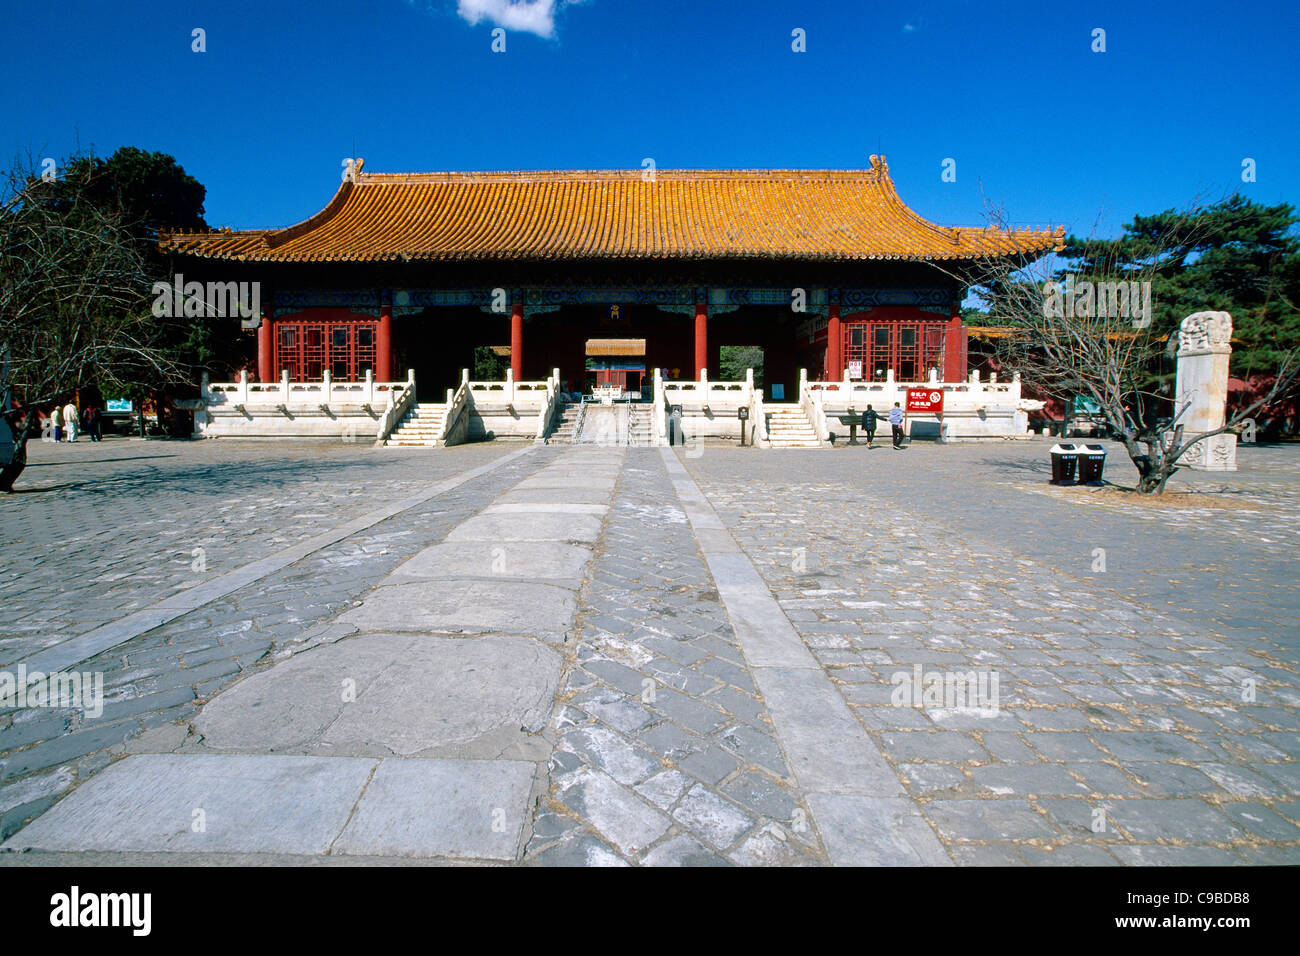 Ling En Gate, Chang Ling, Ming Tombs Complex, China - Stock Image